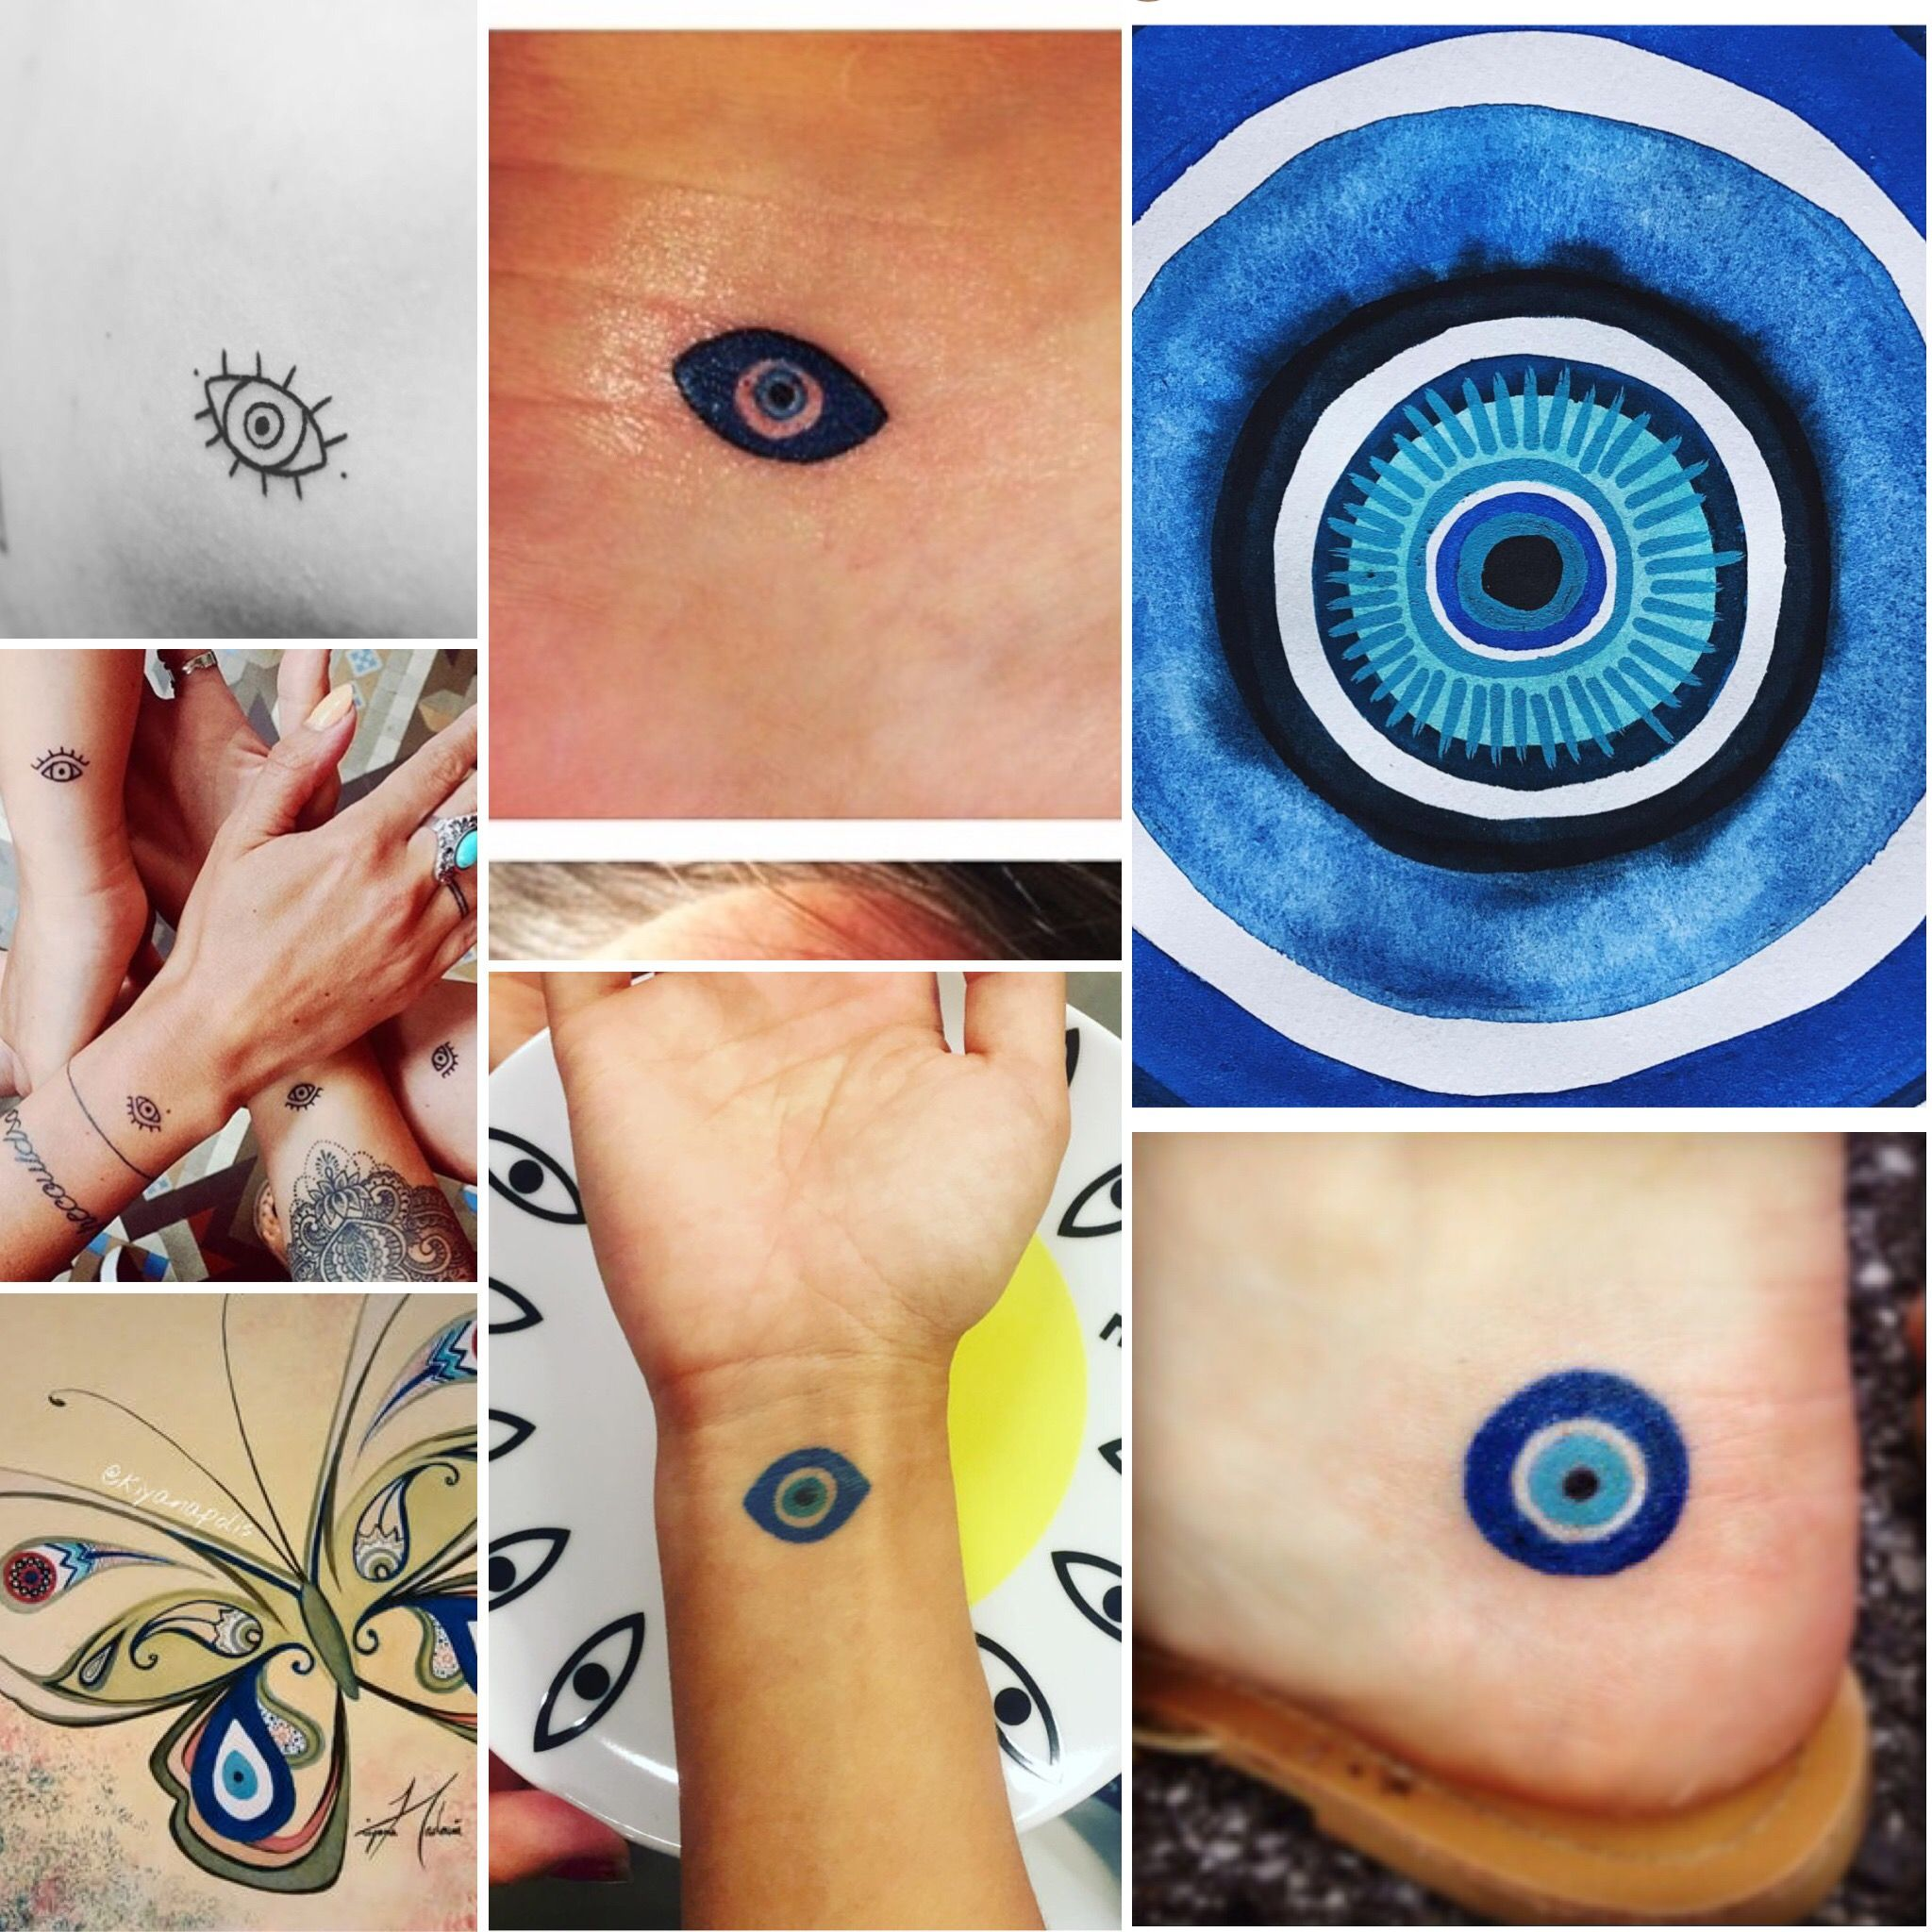 Evil eye tattoo (symbol / icon) | Tattoos | Pinterest ...